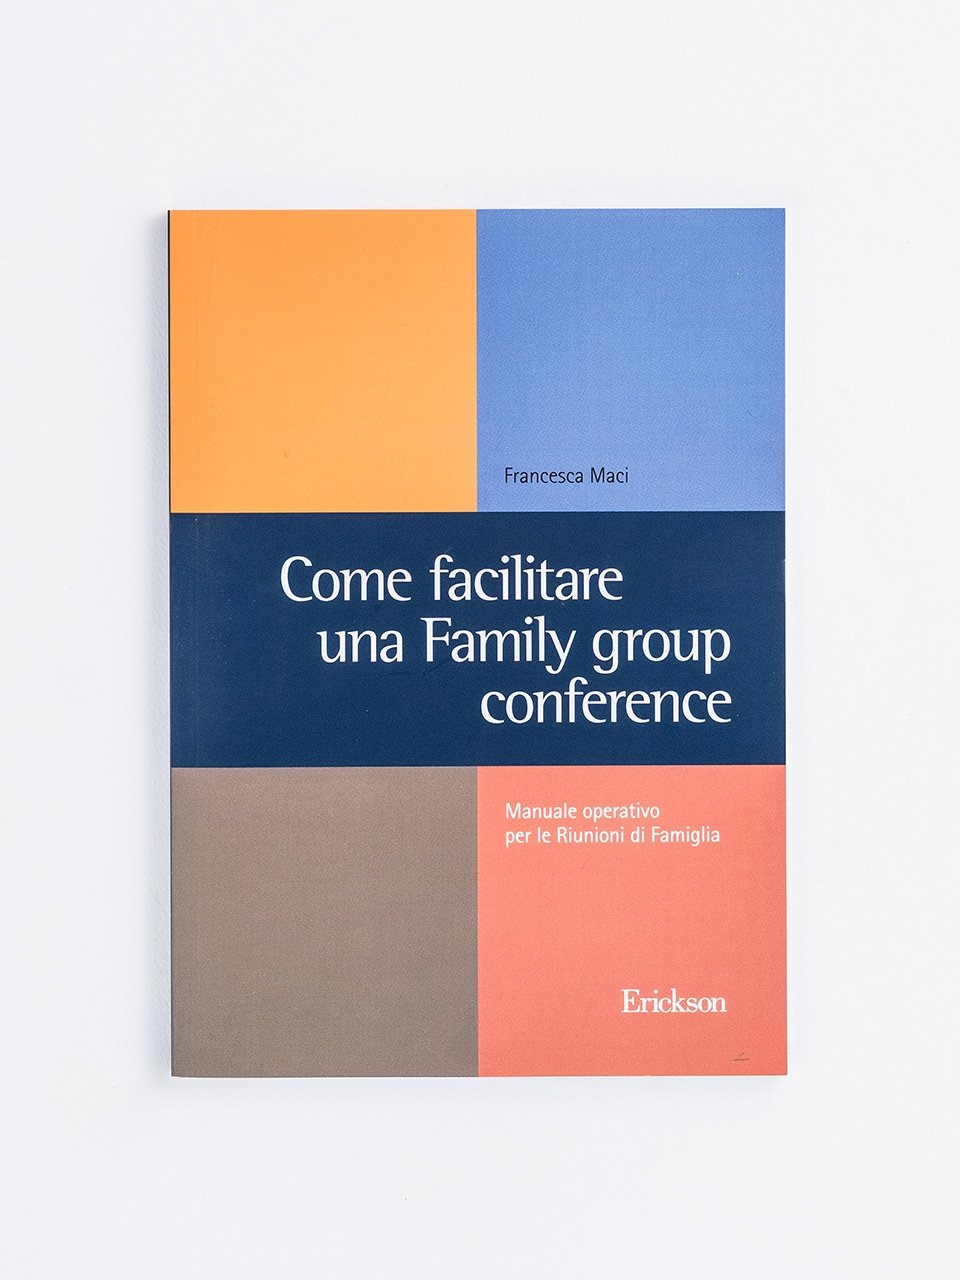 Come facilitare una Family group conference - Insegnare Domani - Avvertenze generali - Libri - Erickson